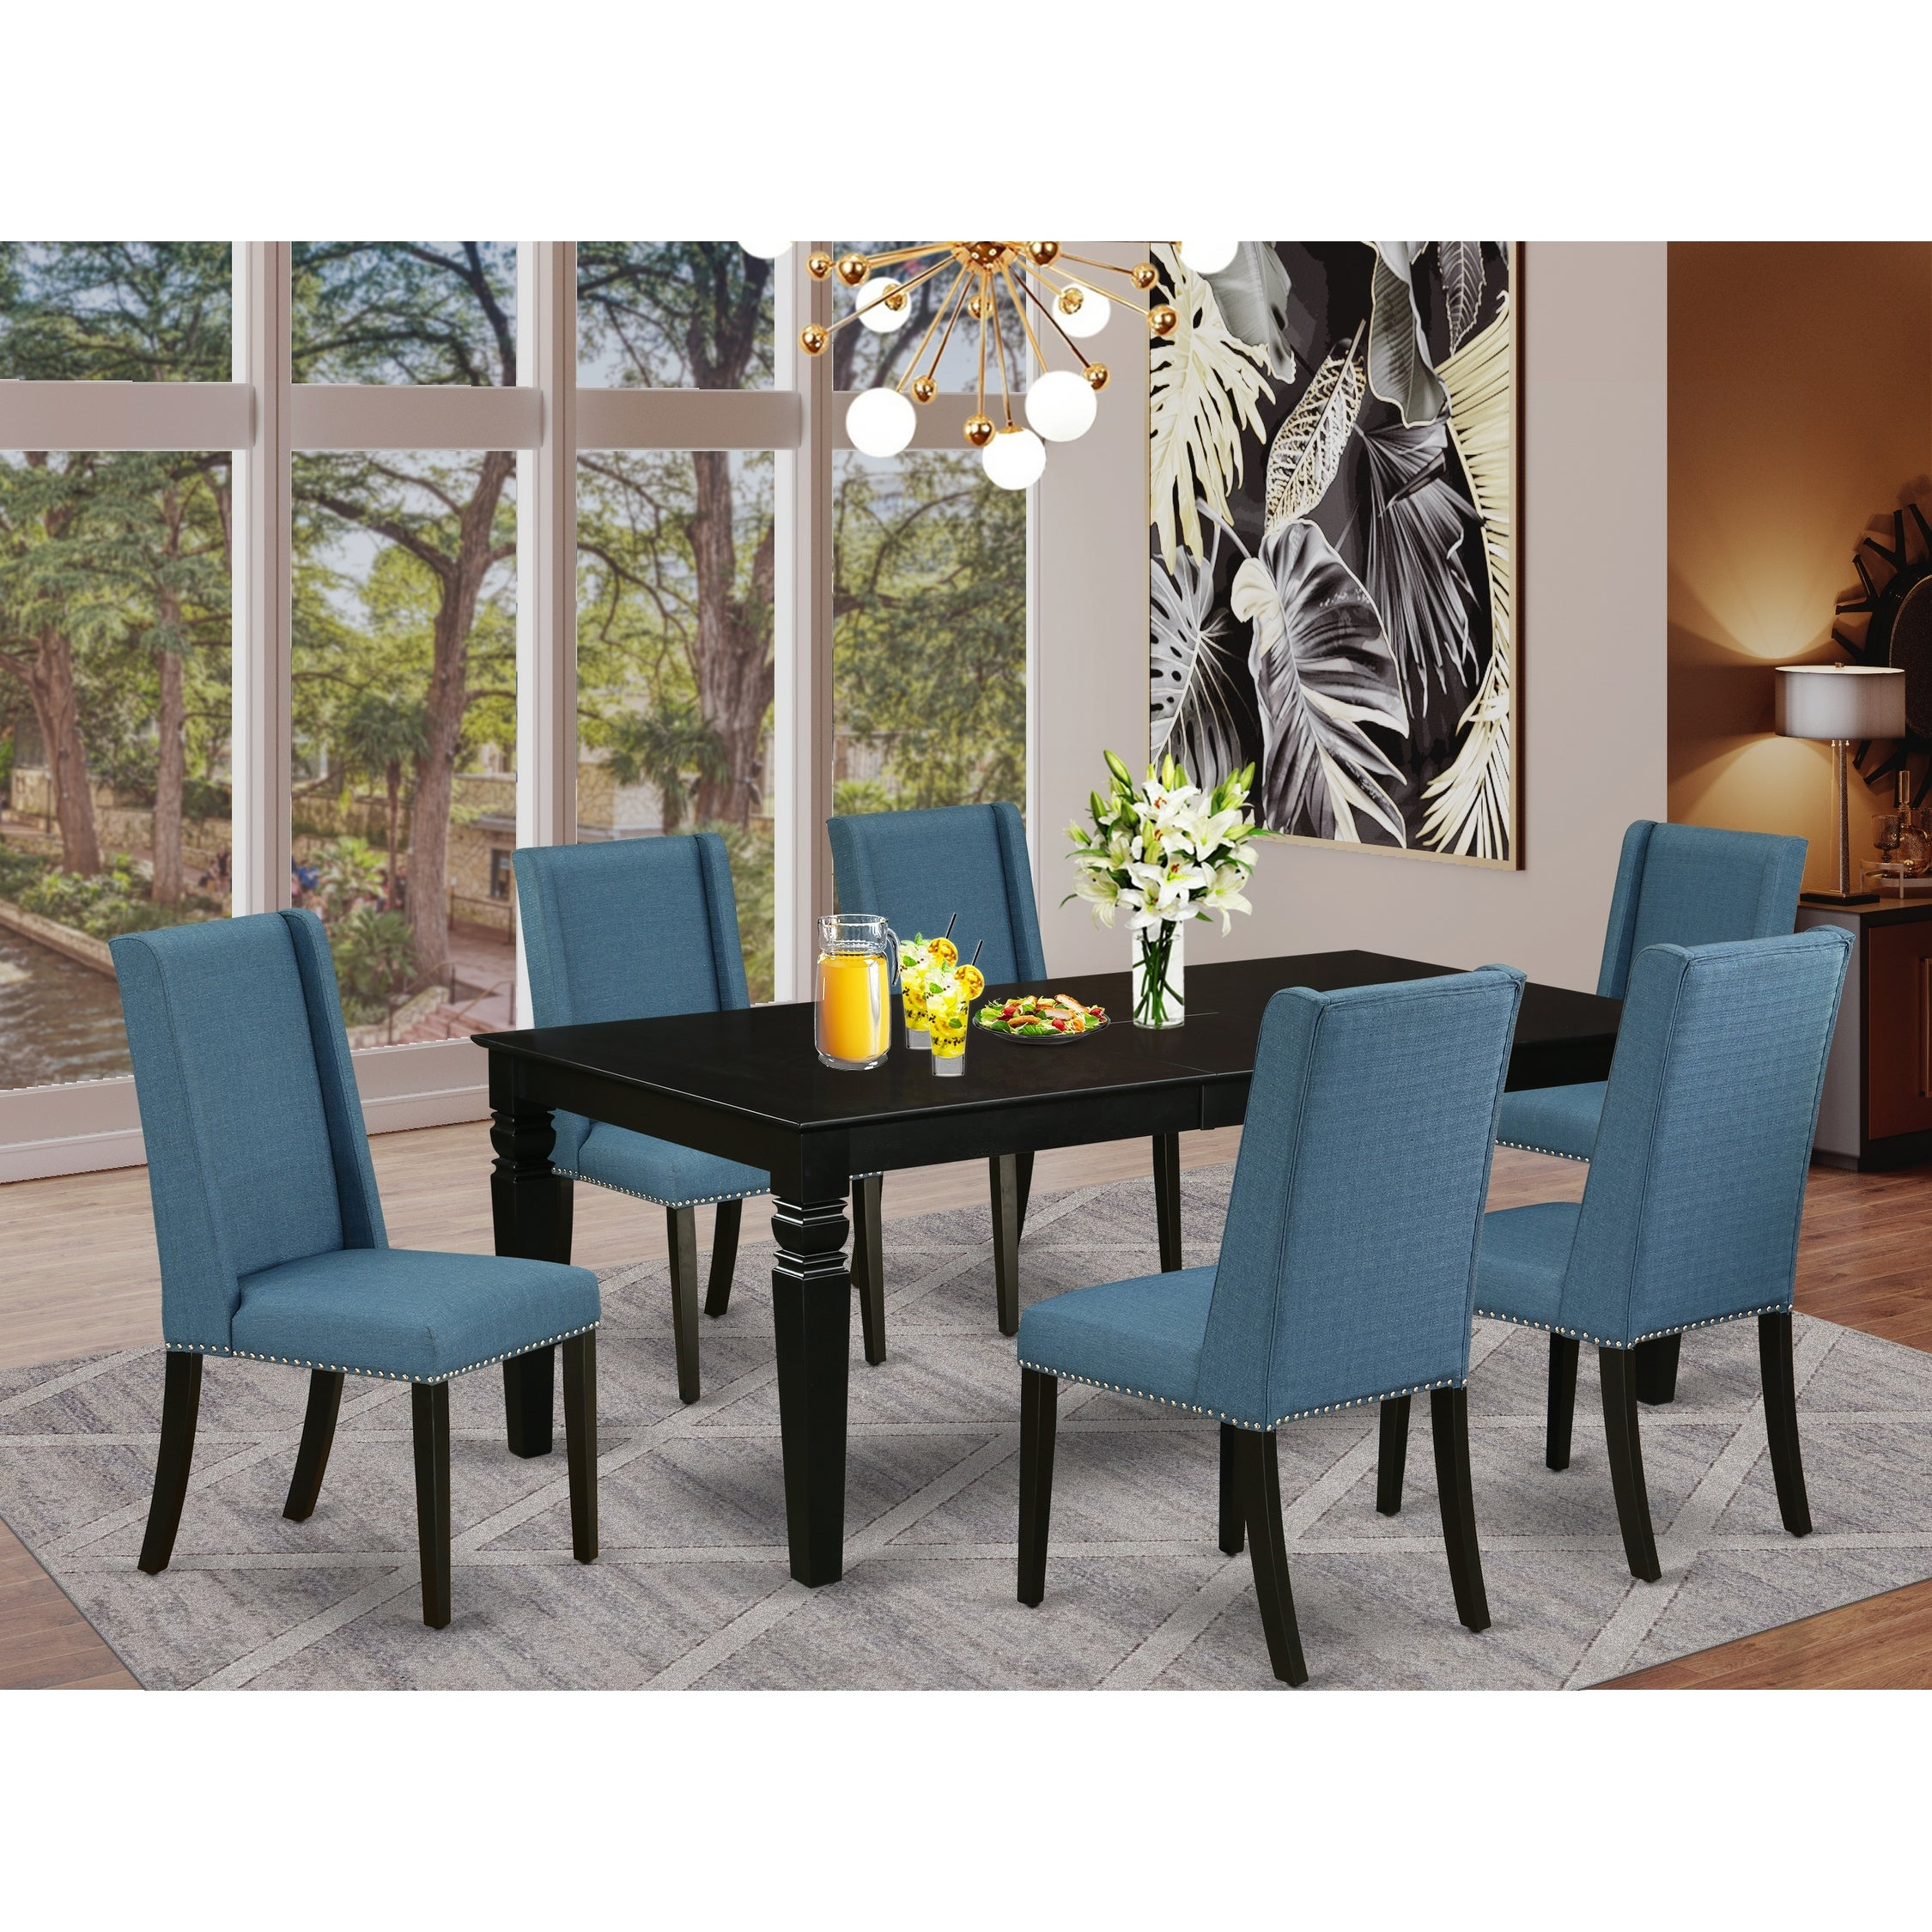 Lgfl7 Blk 21 7 Piece Dining Table Set 6 Person Dining Chairs And Butterfly Leaf Kitchen Dining Table High Back Black Finish Overstock 32085563